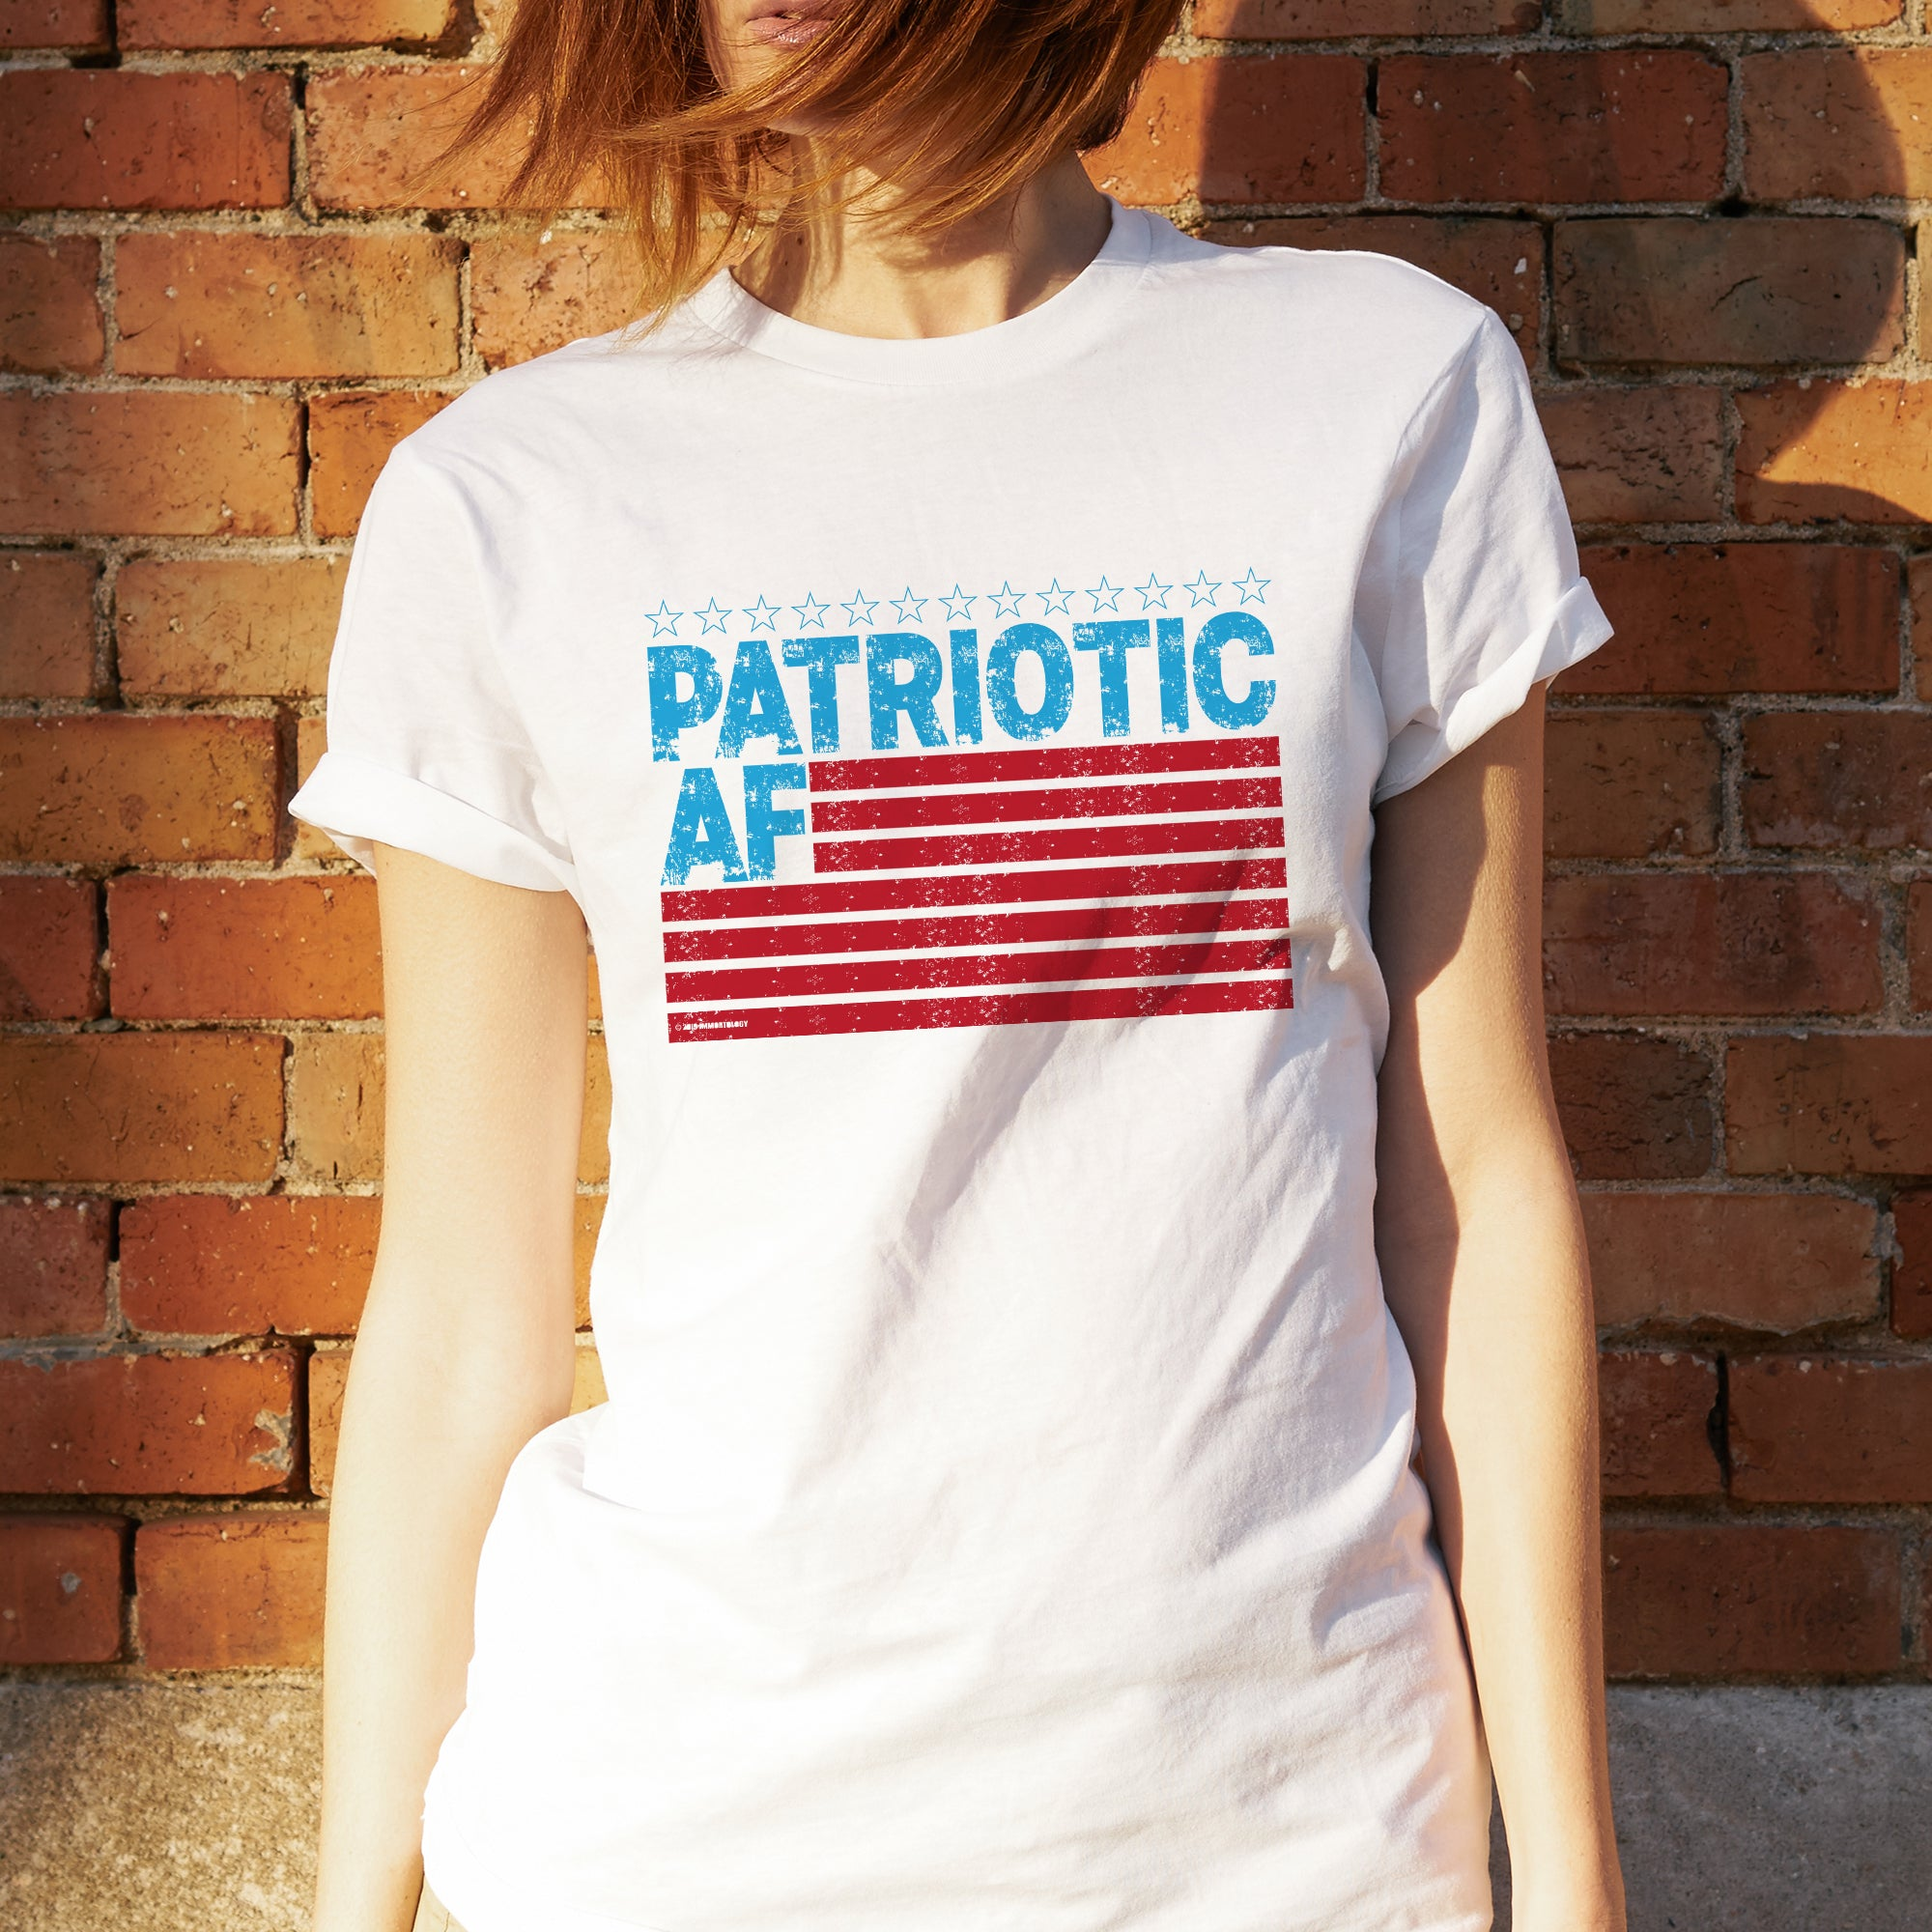 Patriotic AF unisex t-shirt, birthday, Christmas, second amendment, NRA, freedom gift